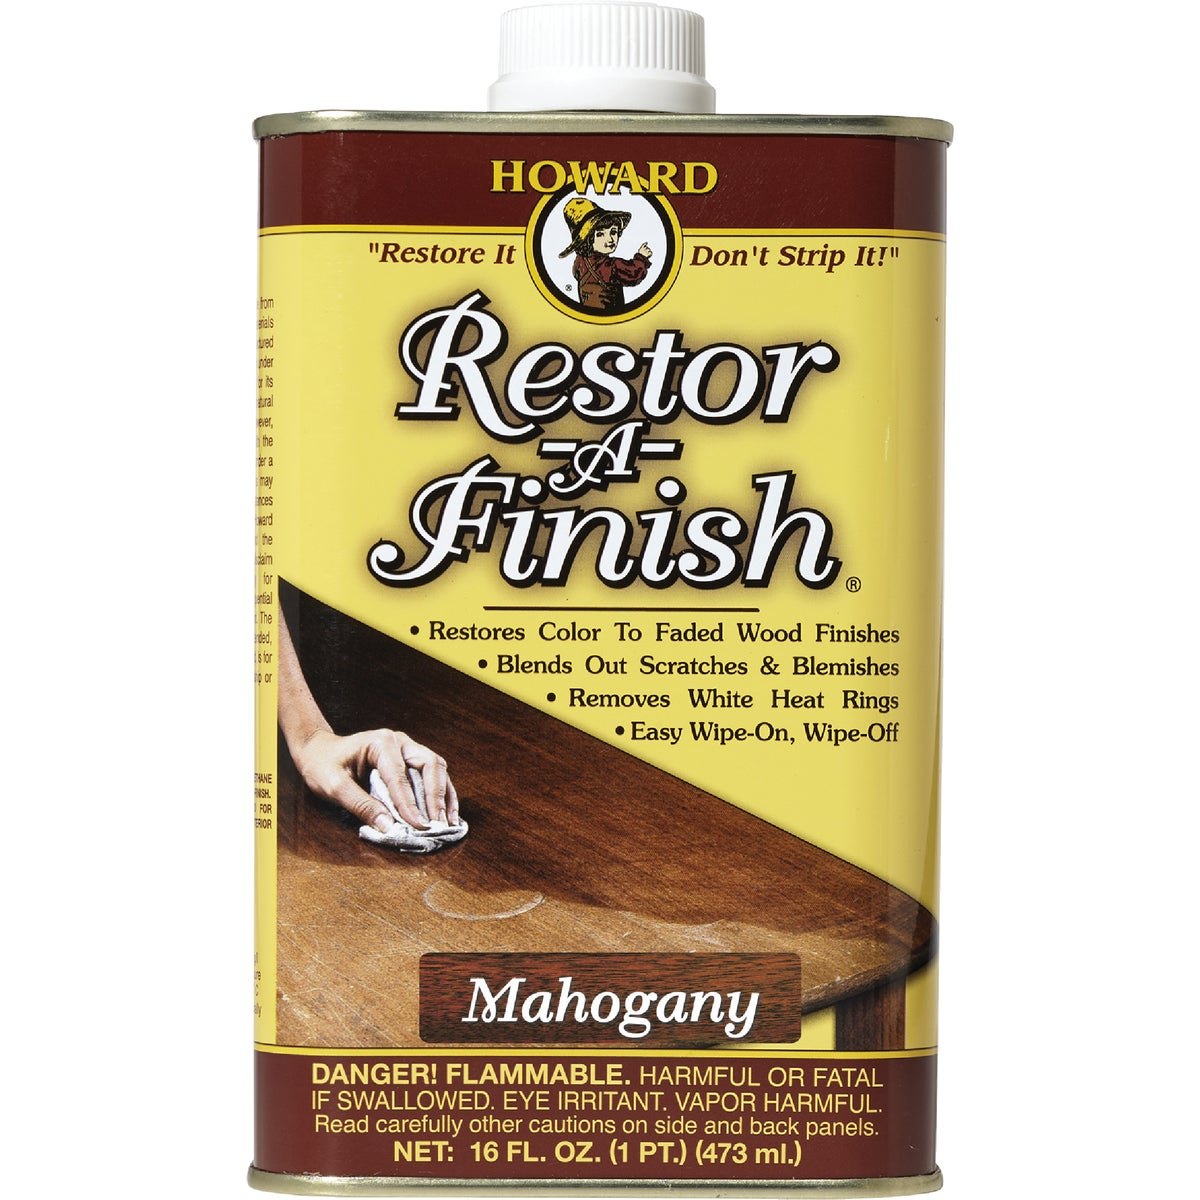 MAHOGANY RESTOR-A-FINISH - RF5016 by Howard Products